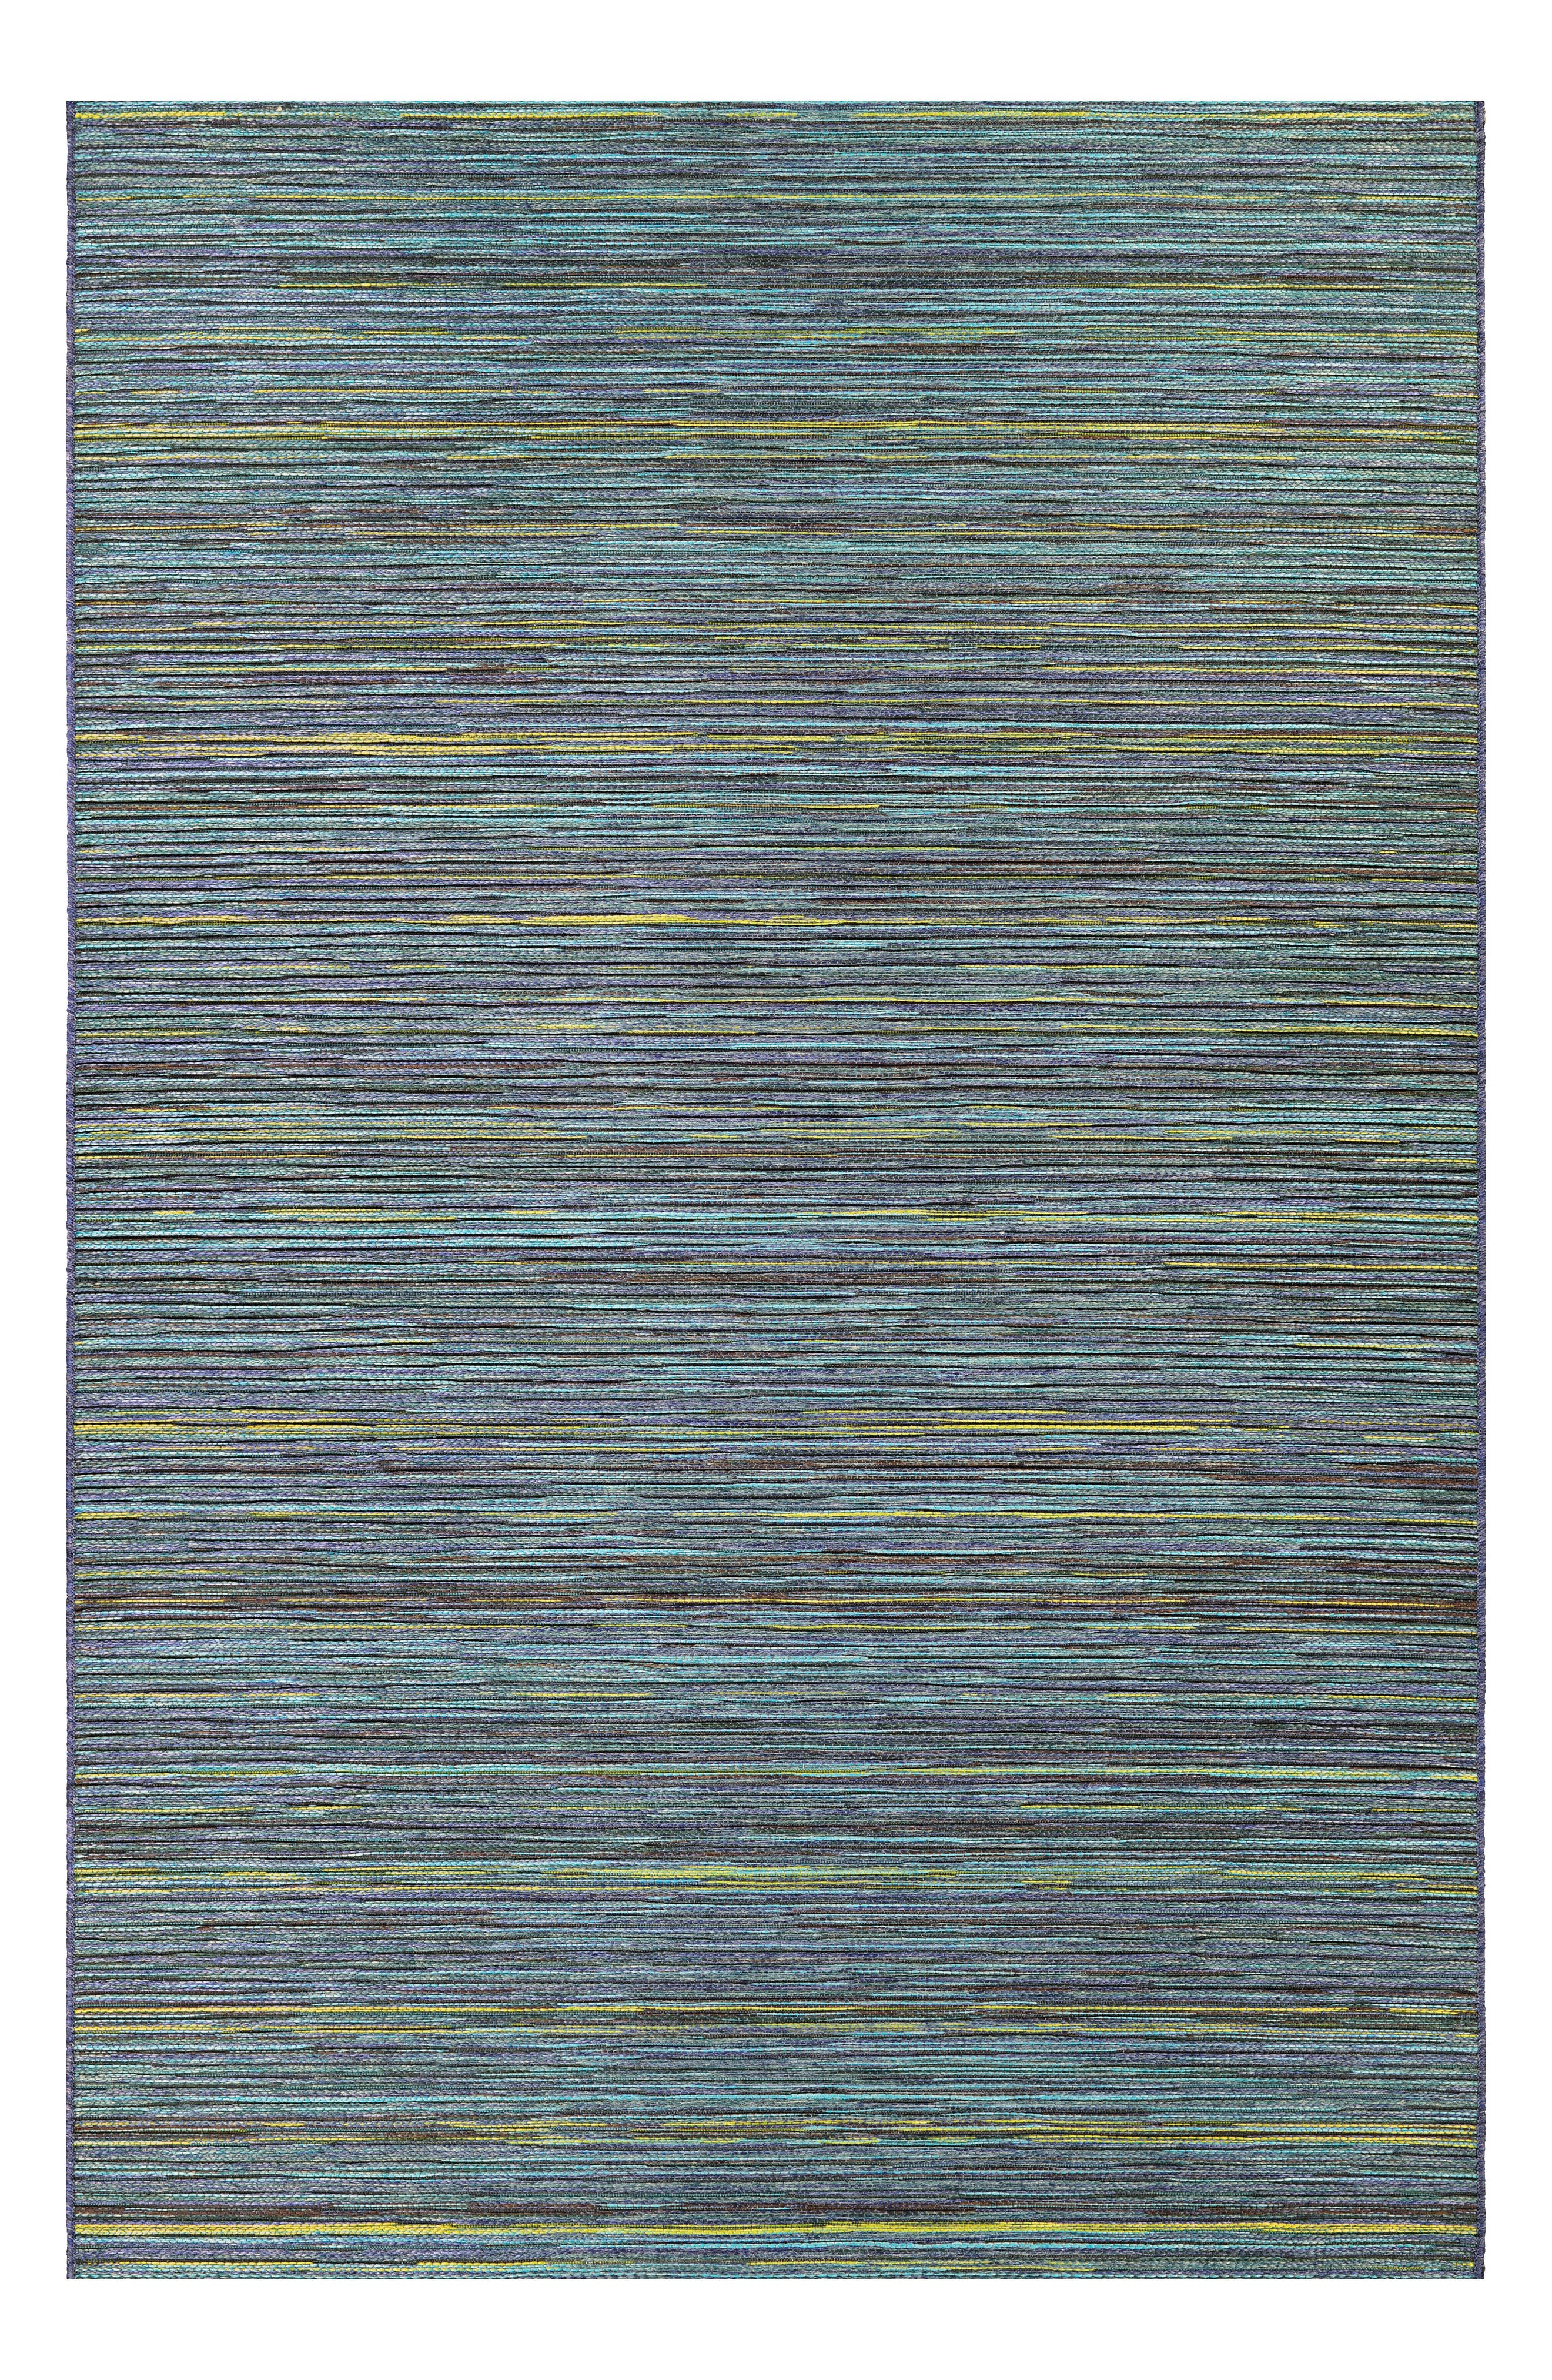 Alternate Image 1 Selected - Couristan Hinsdale Indoor/Outdoor Rug